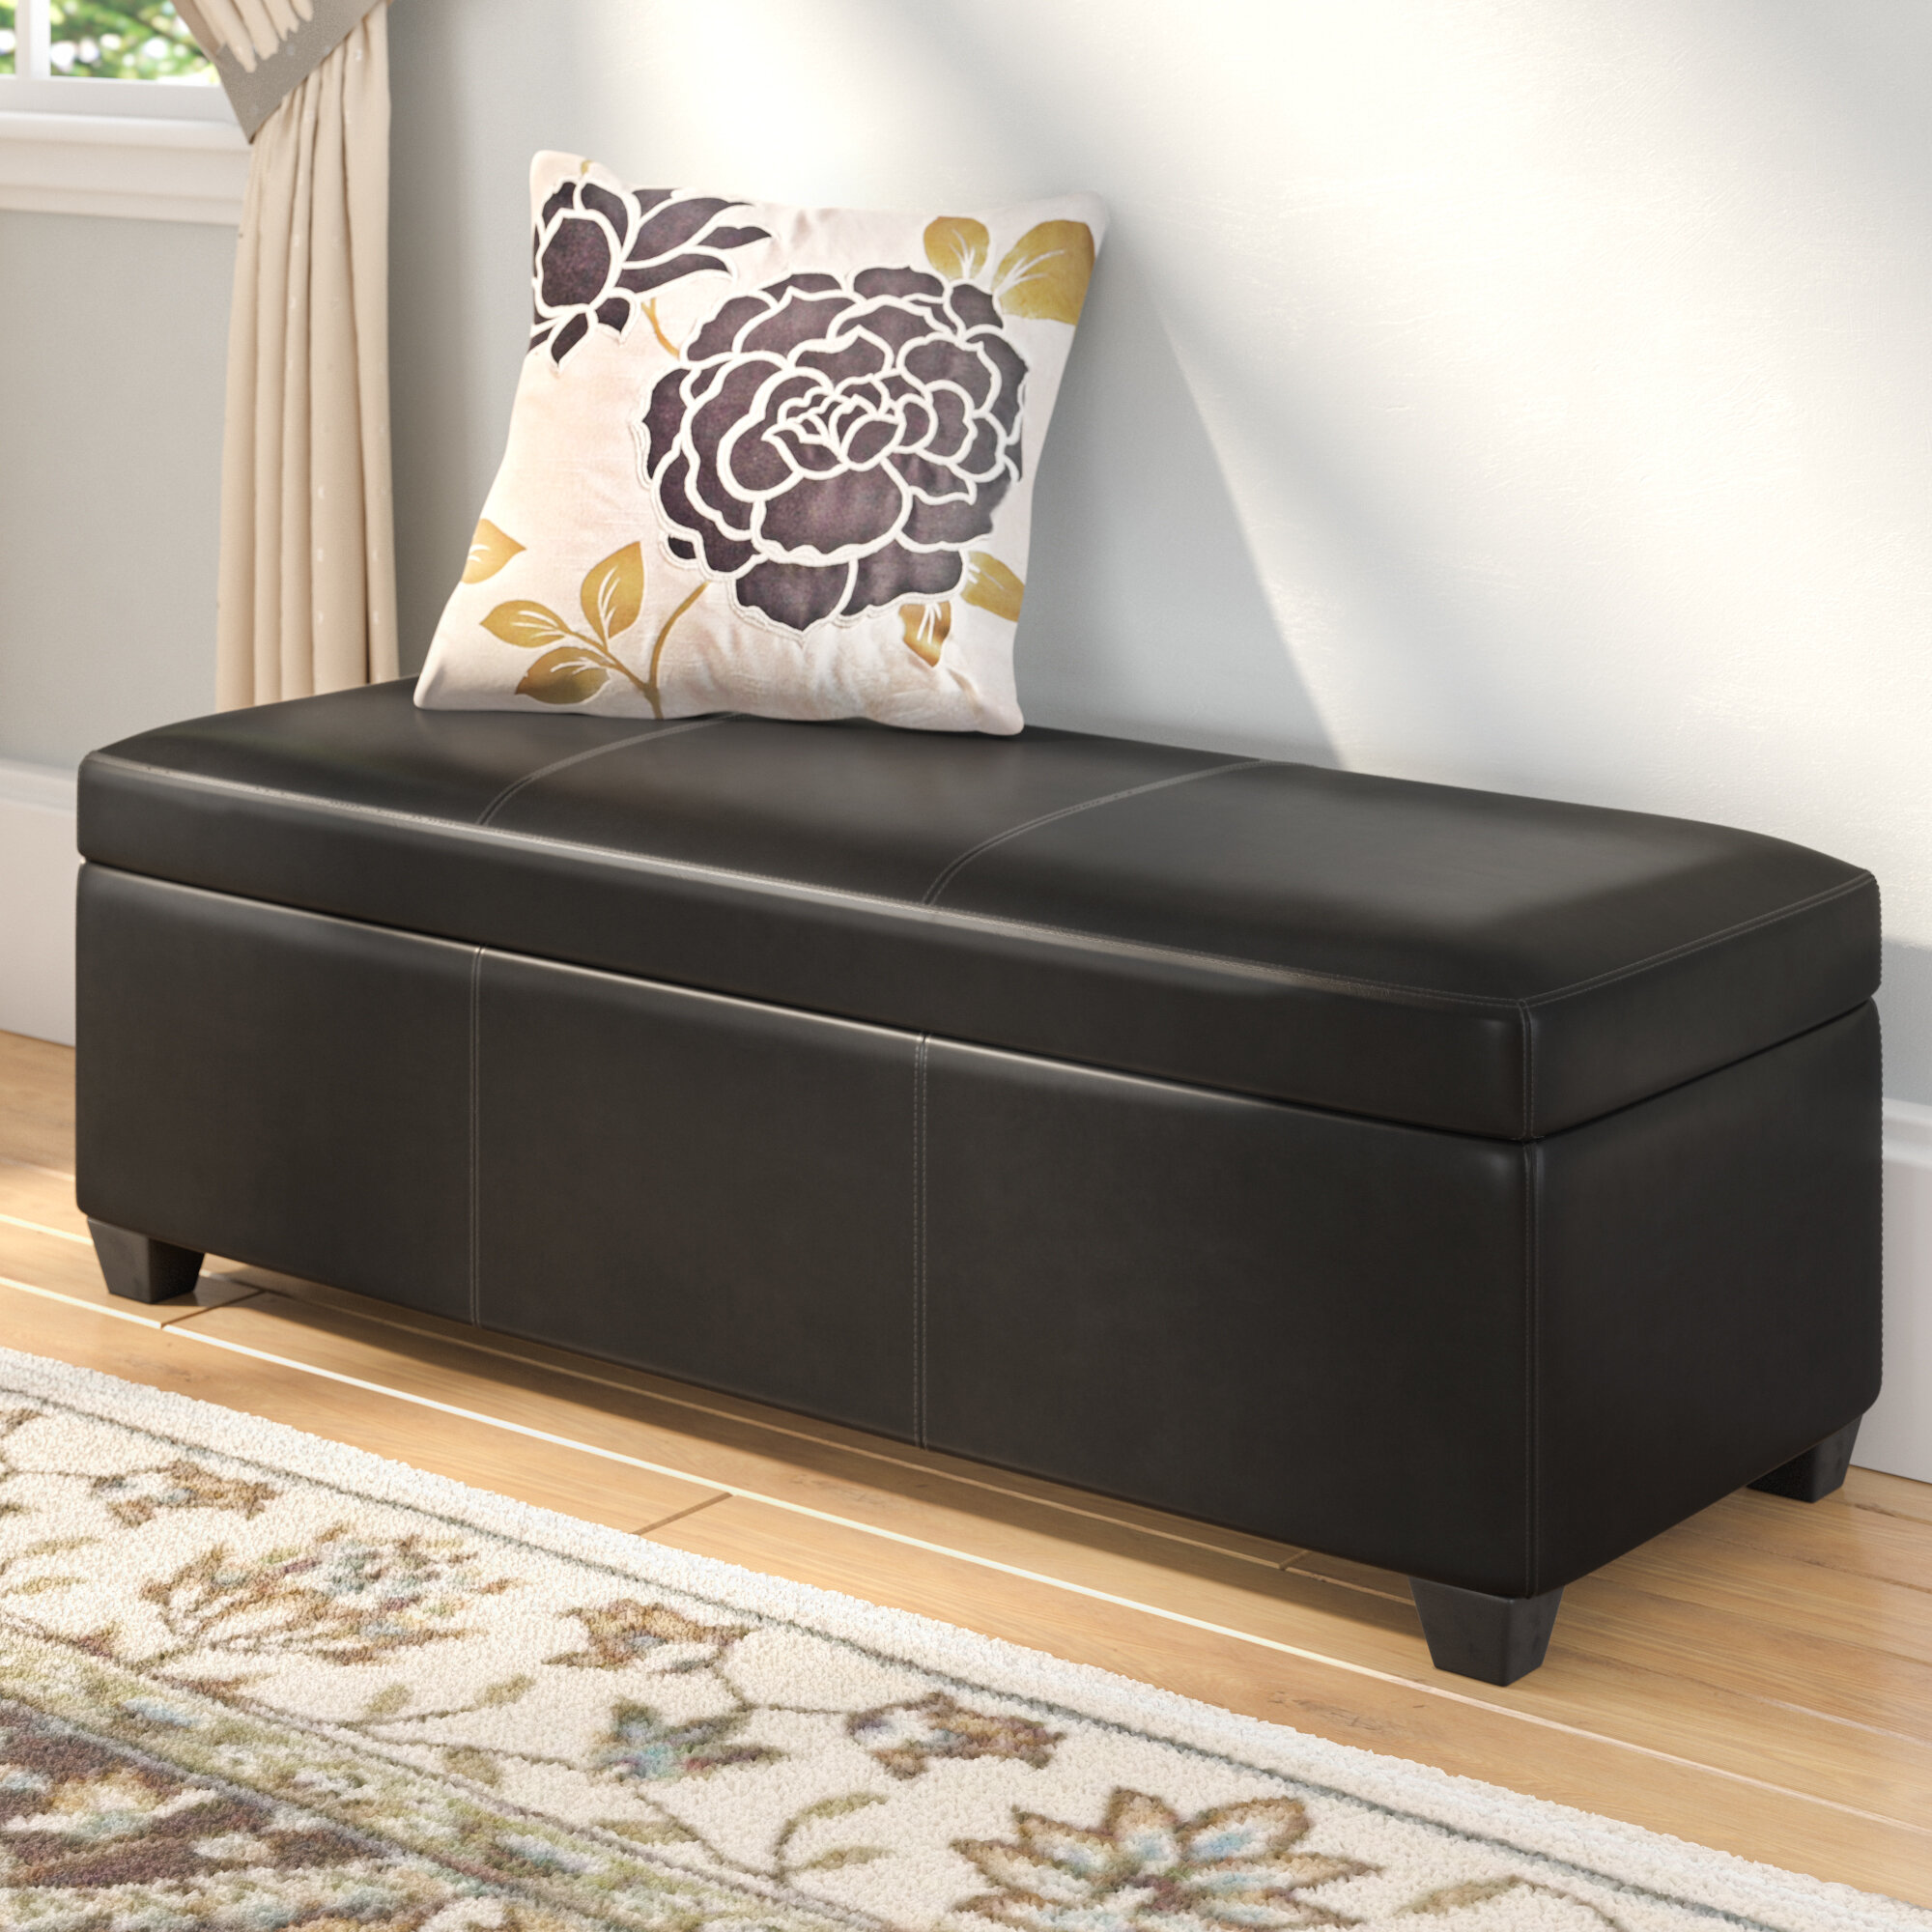 Andover Mills Boston Faux Leather Storage Bench U0026 Reviews | Wayfair